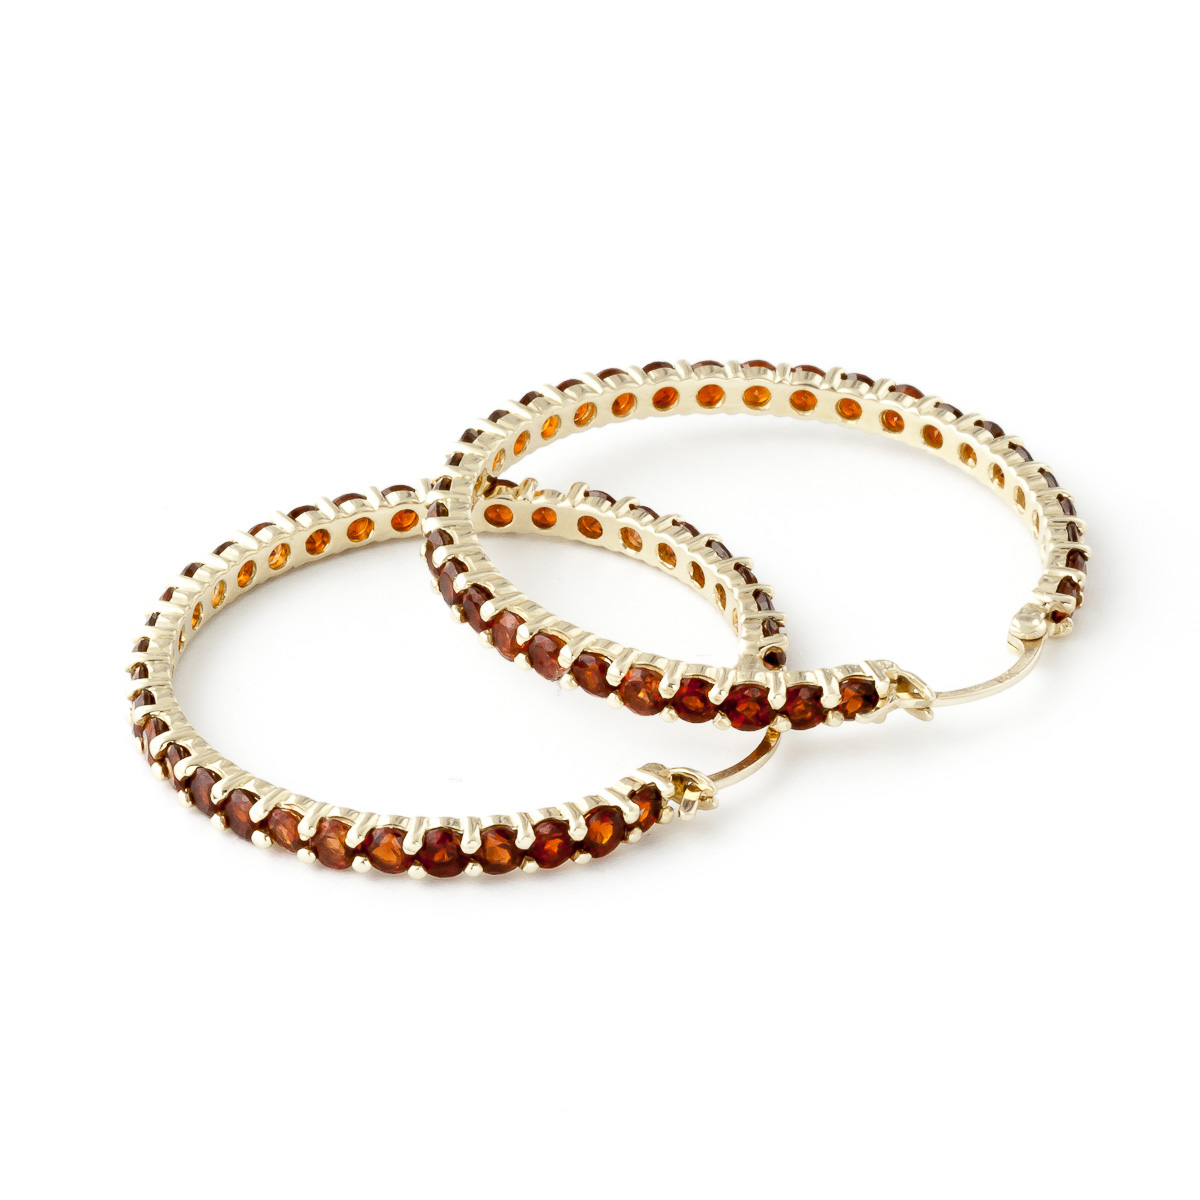 Garnet Metro Hoop Earrings 6.0ctw in 14K Gold